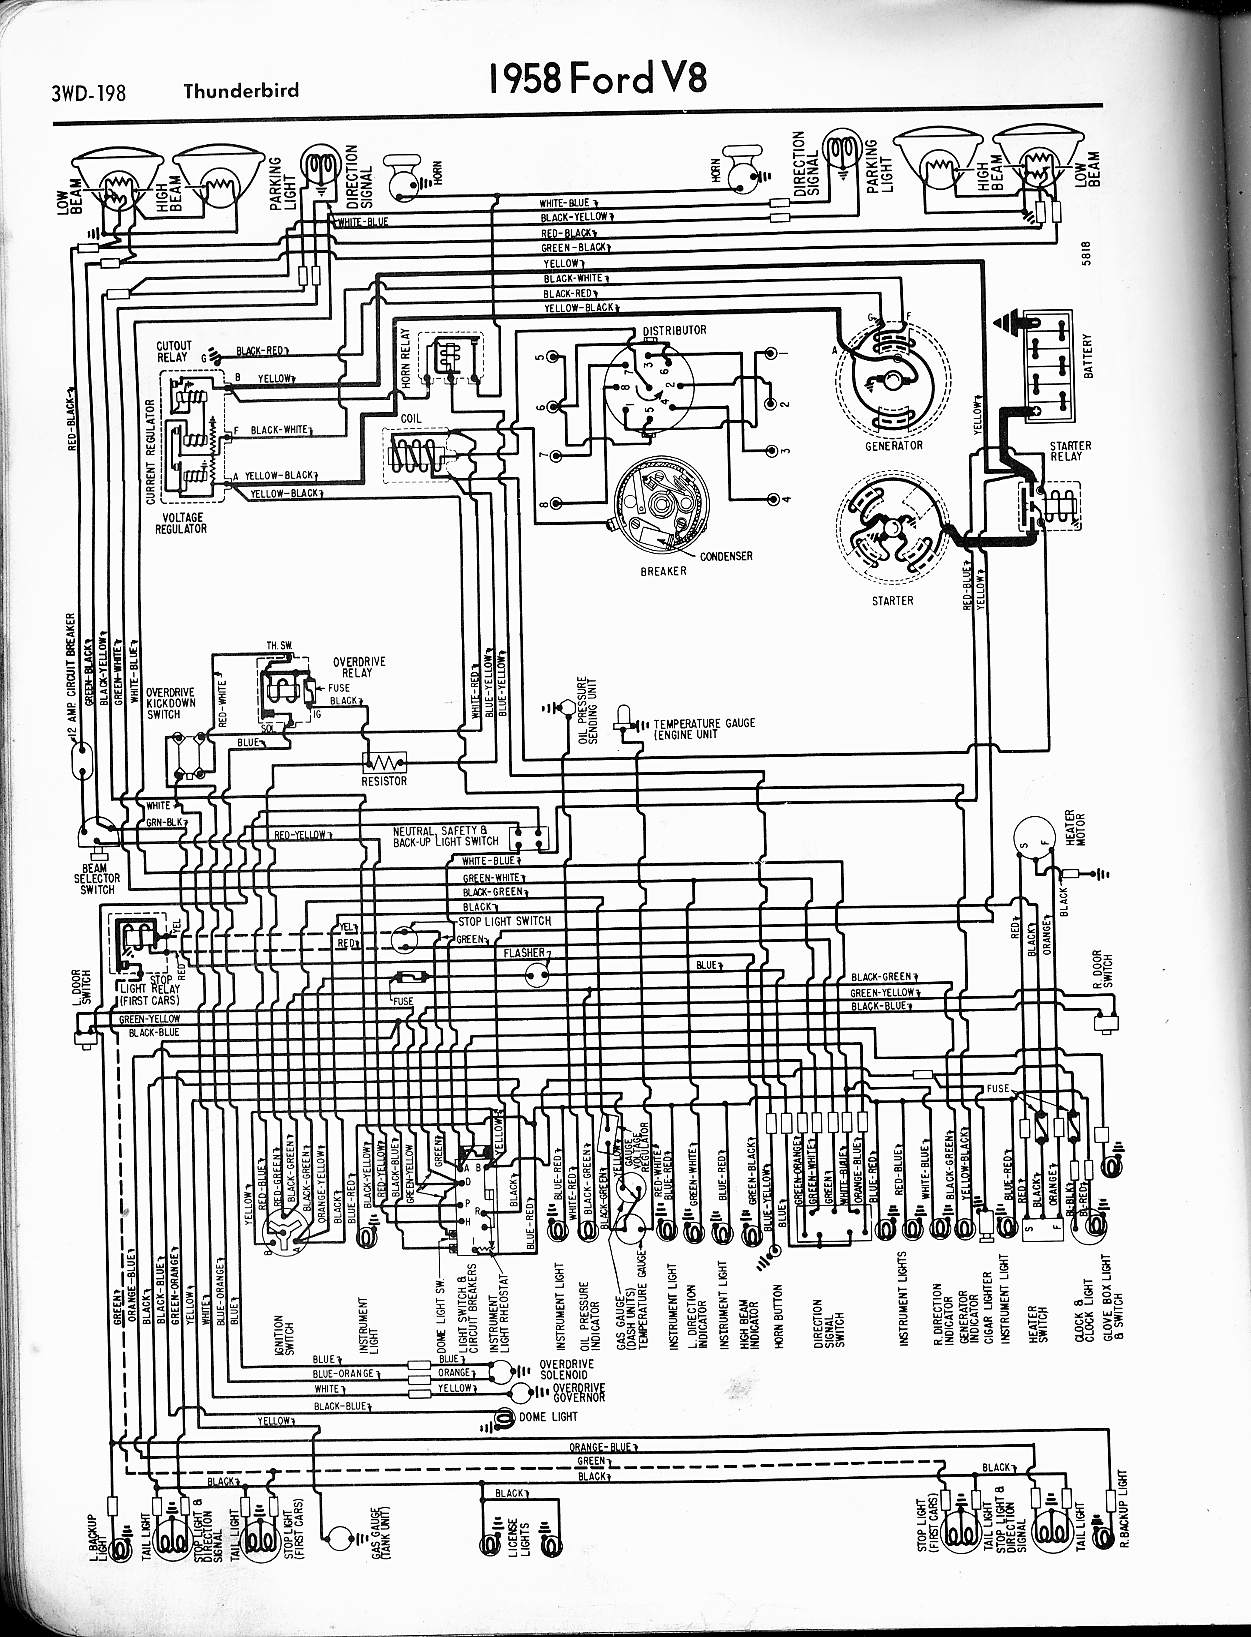 MWire5765 198 57 65 ford wiring diagrams 1955 thunderbird wiring diagram at crackthecode.co